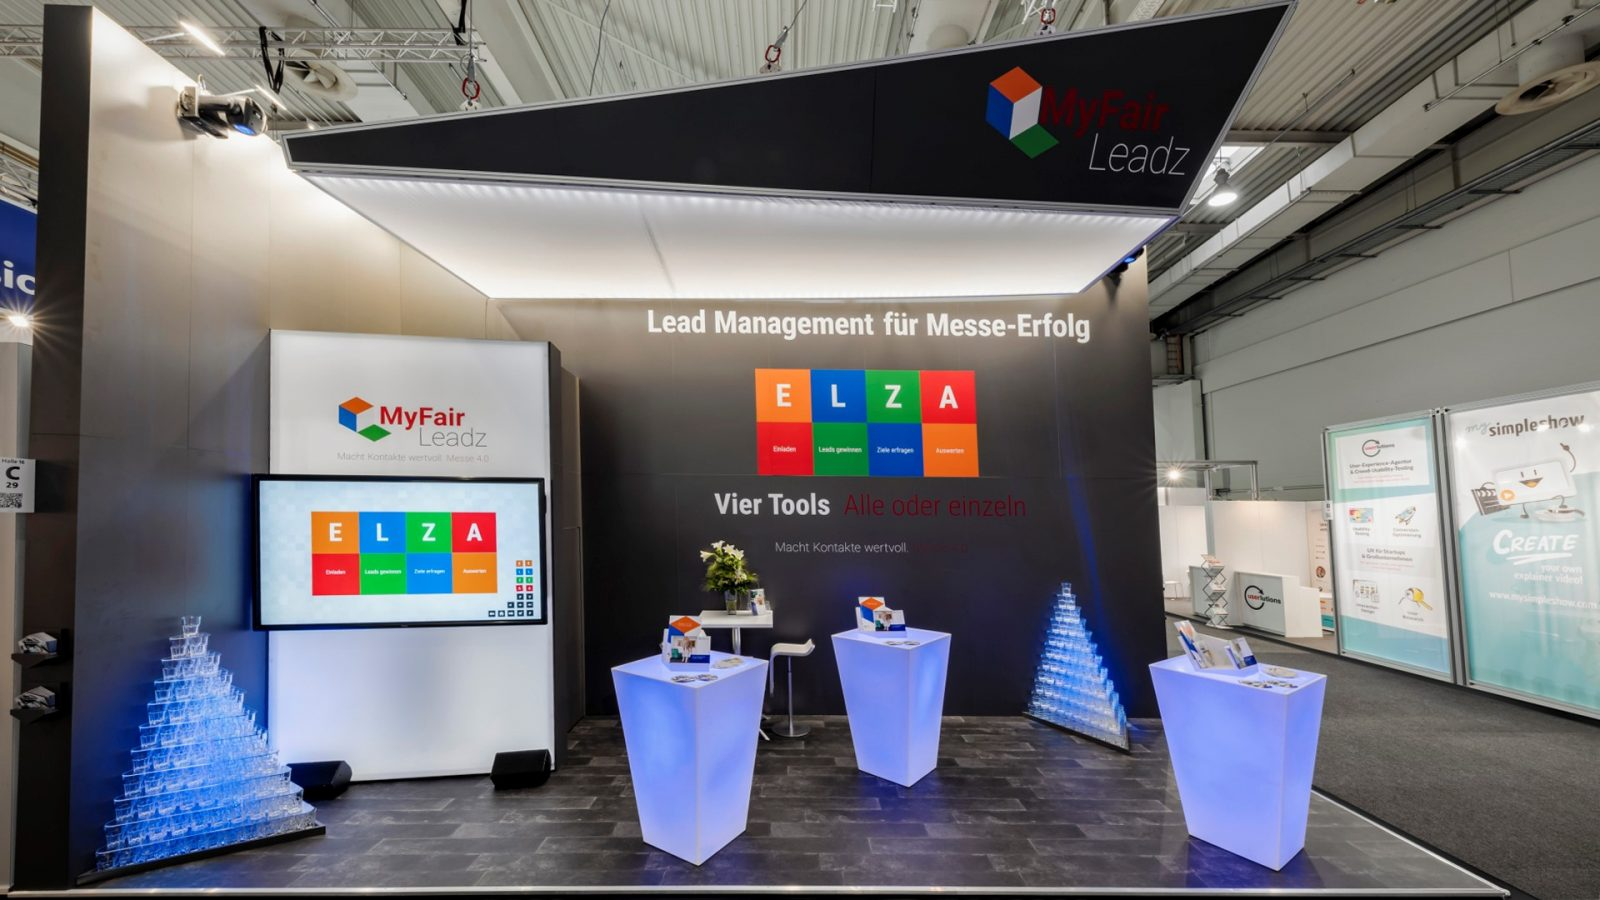 PREUSS_MESSE_MFL_CEBIT